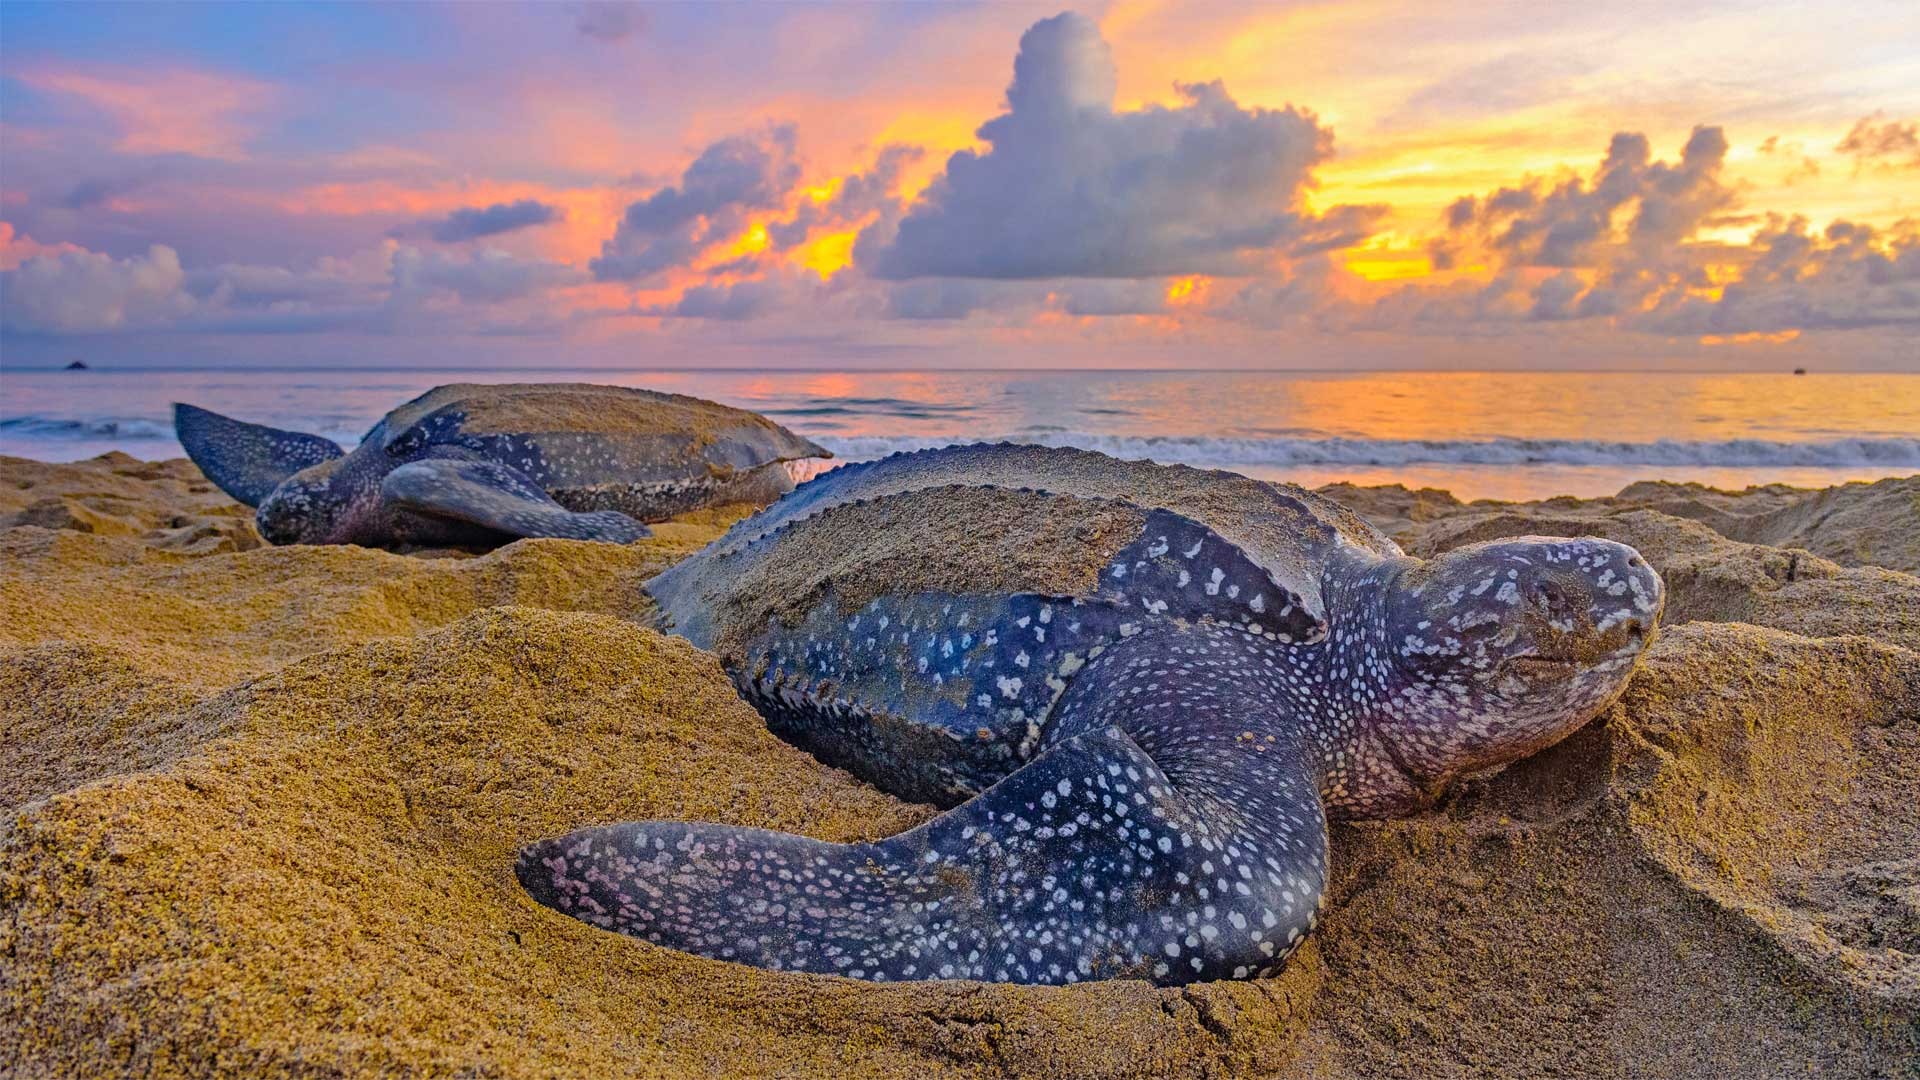 Leatherback sea turtles in Trinidad and Tobago (© Shane P. White/Minden Pictures)(Bing United States)